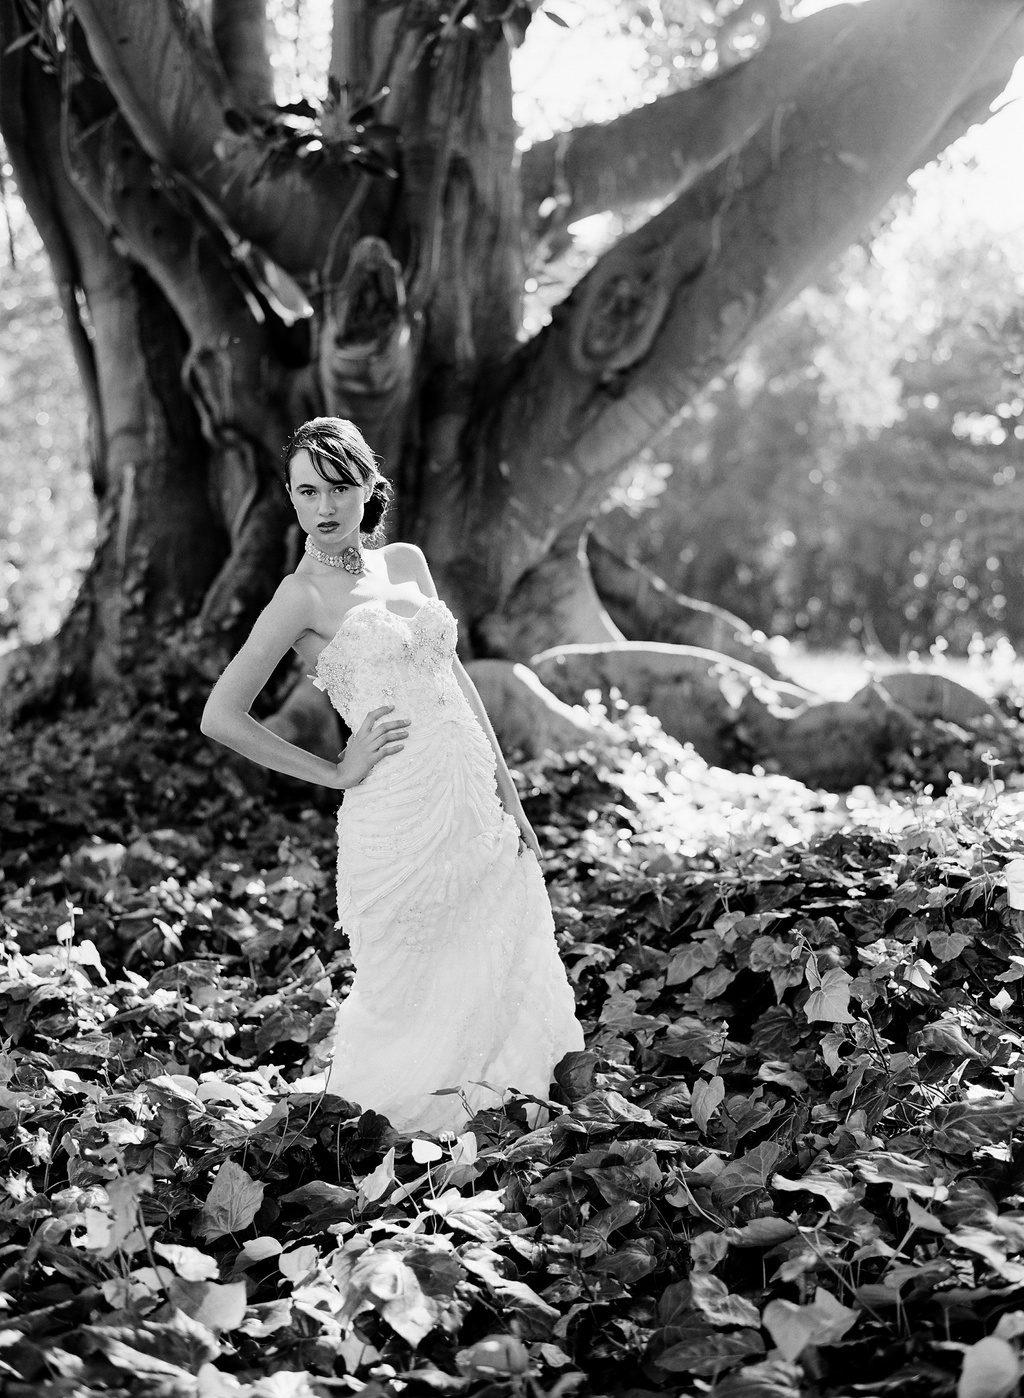 Styled-wedding-beaux-arts-tea-time-monique-lhuillier-santa-barbara-chic-bridal-gown-wedding-dress-photography-black-and-white-346.full